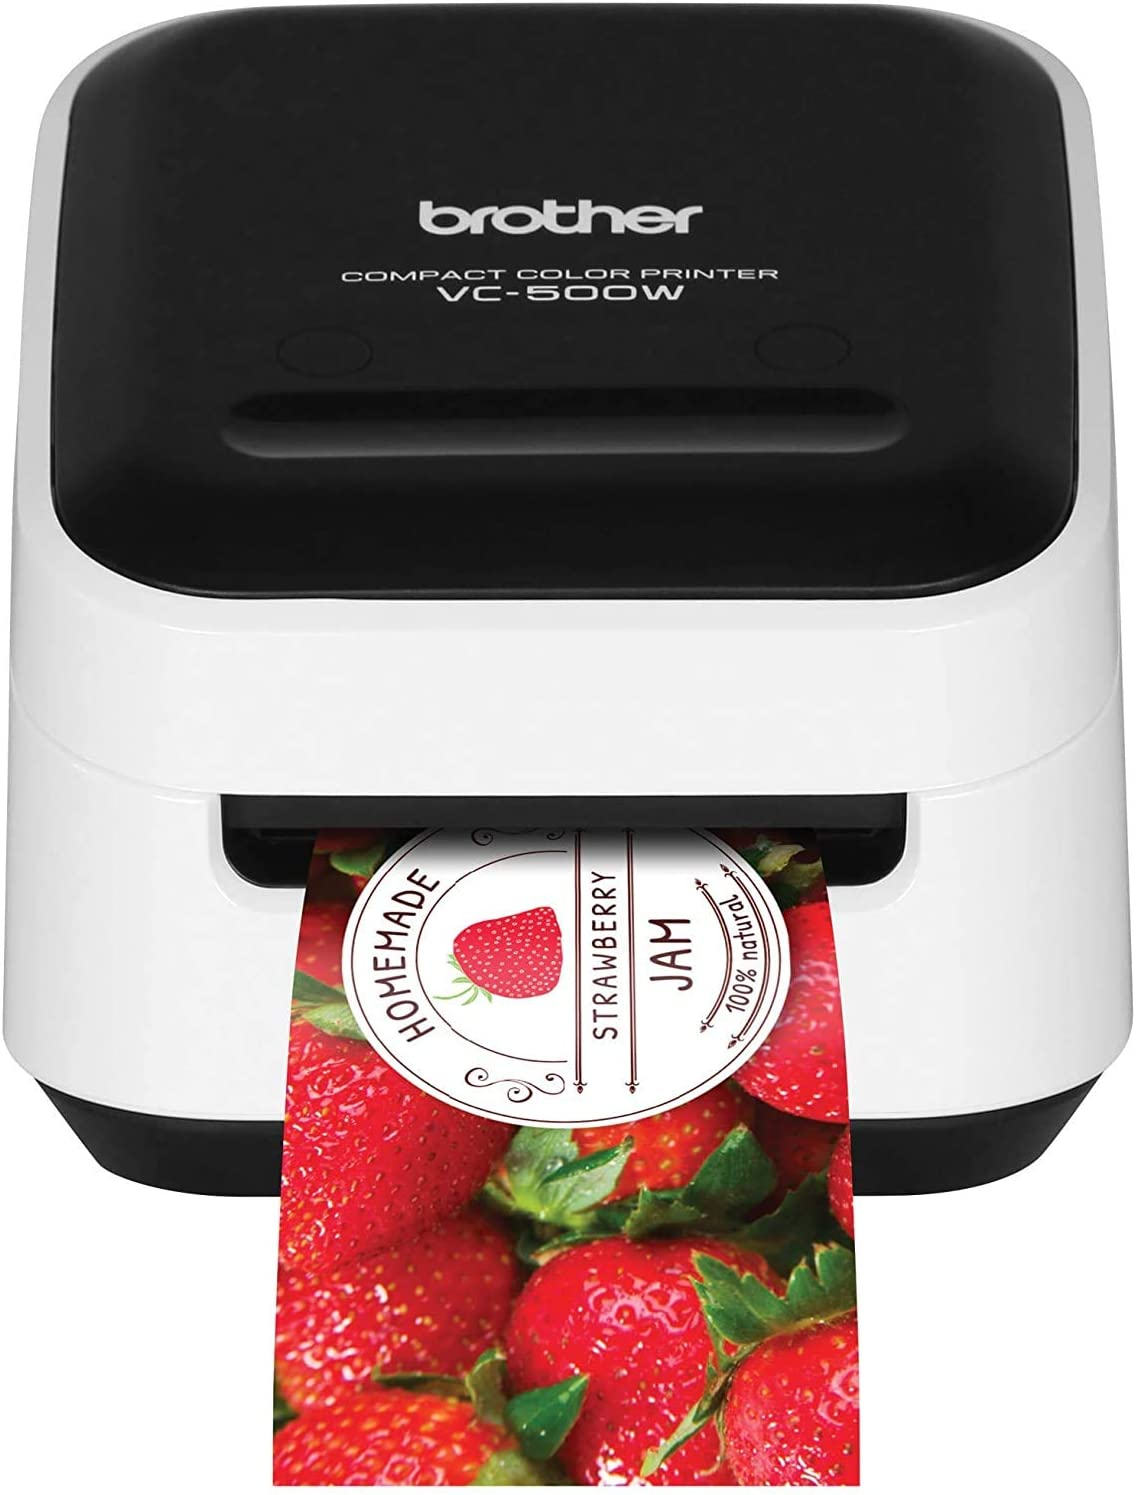 Brother VC-500W Versatile Compact Color Label and Photo Printer